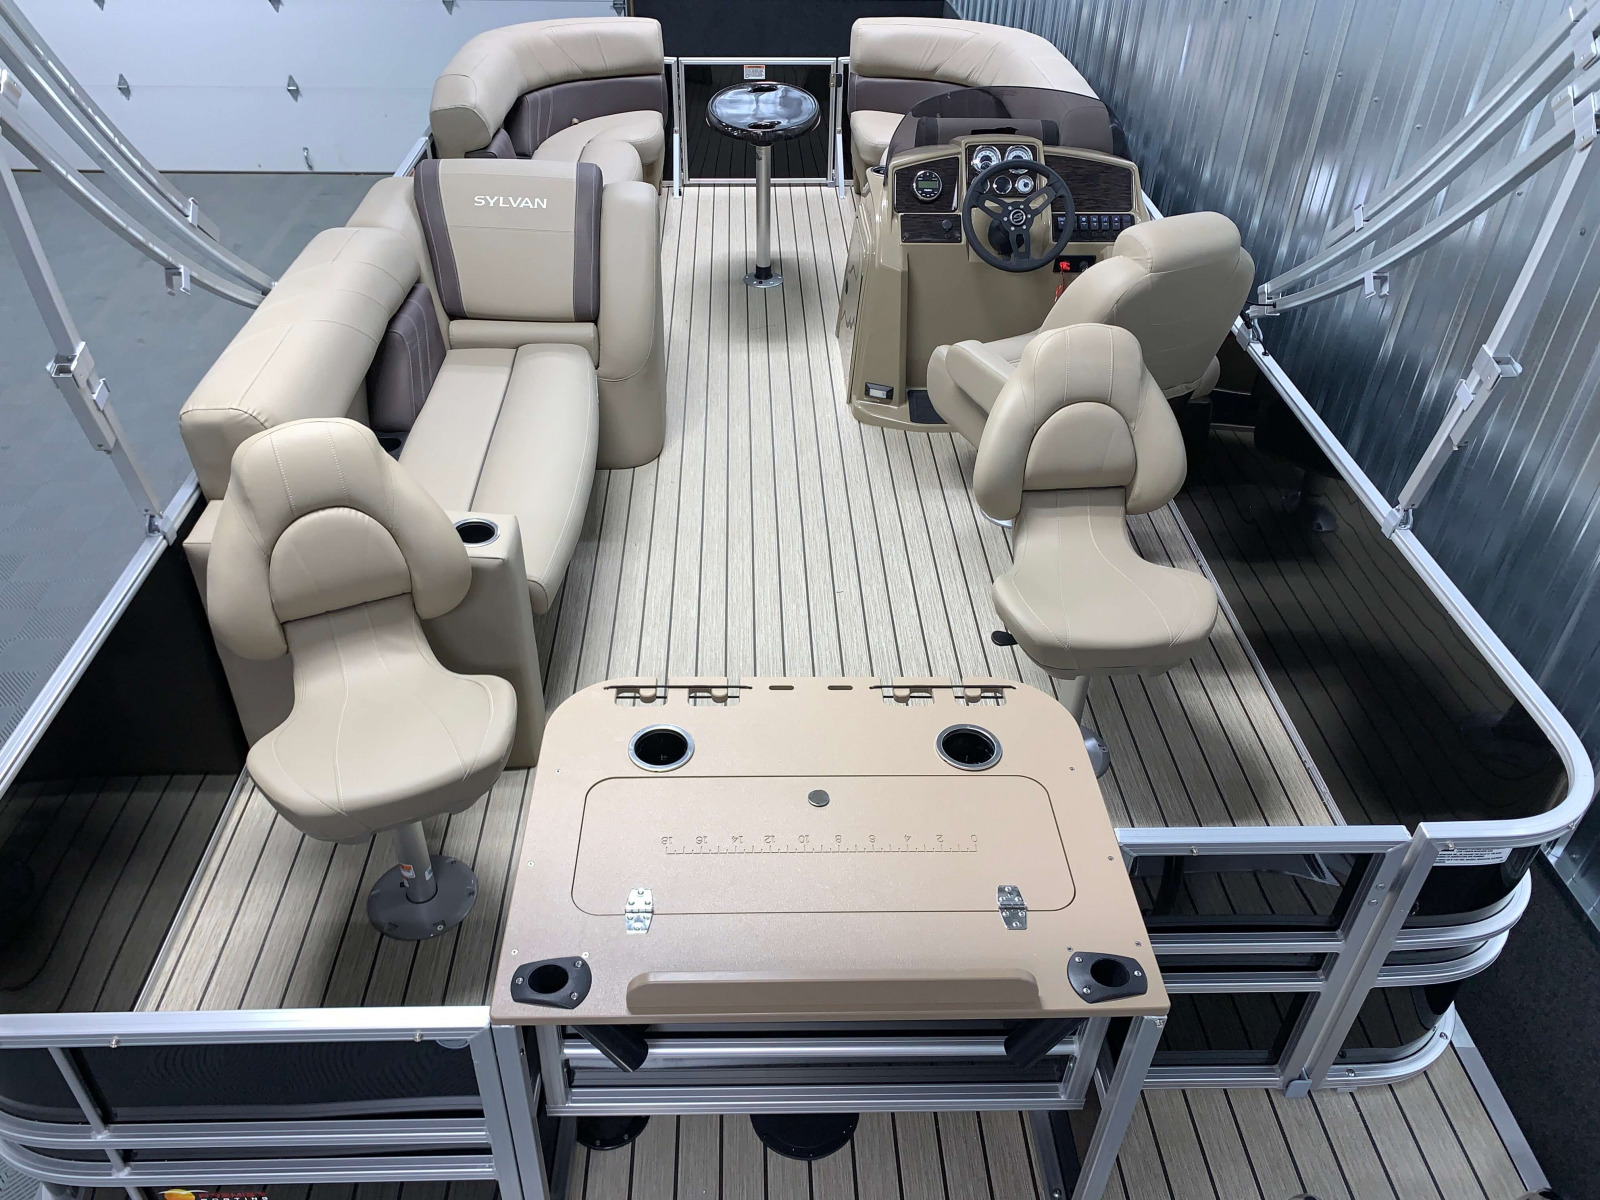 Party Fish Layout of the 2021 Sylvan 8520 Party Fish Pontoon Boat